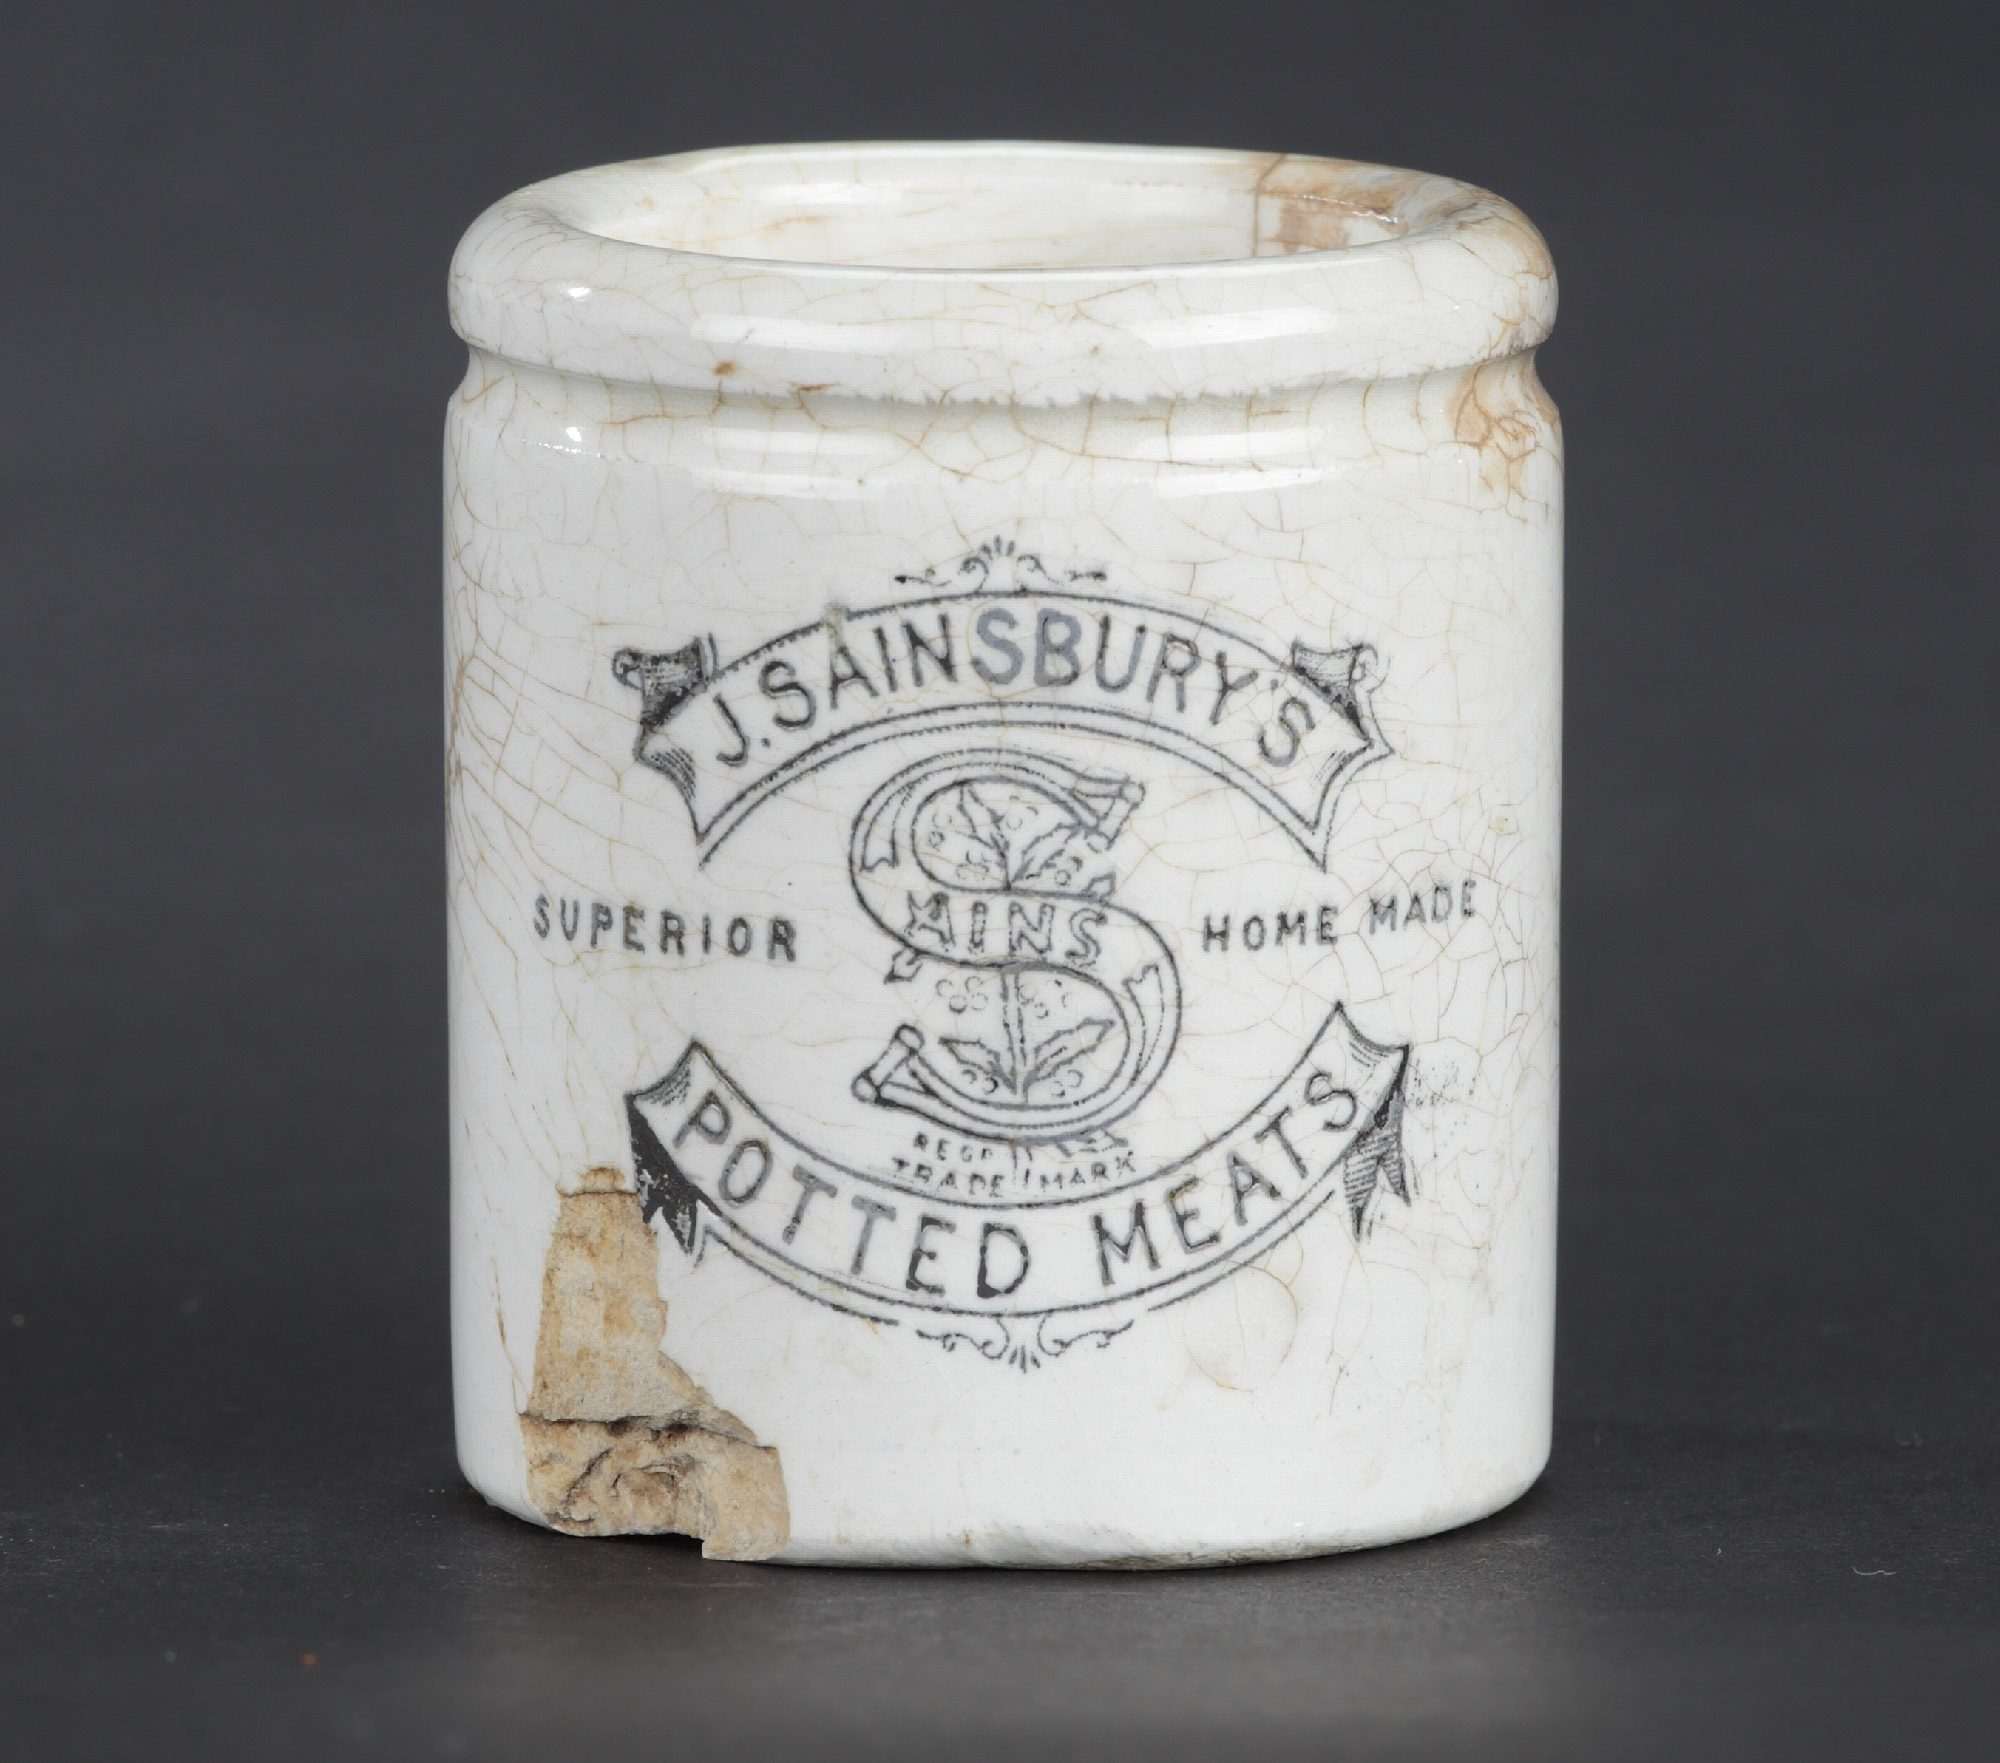 Sainsbury's Potted Meat jars in white earthenware.